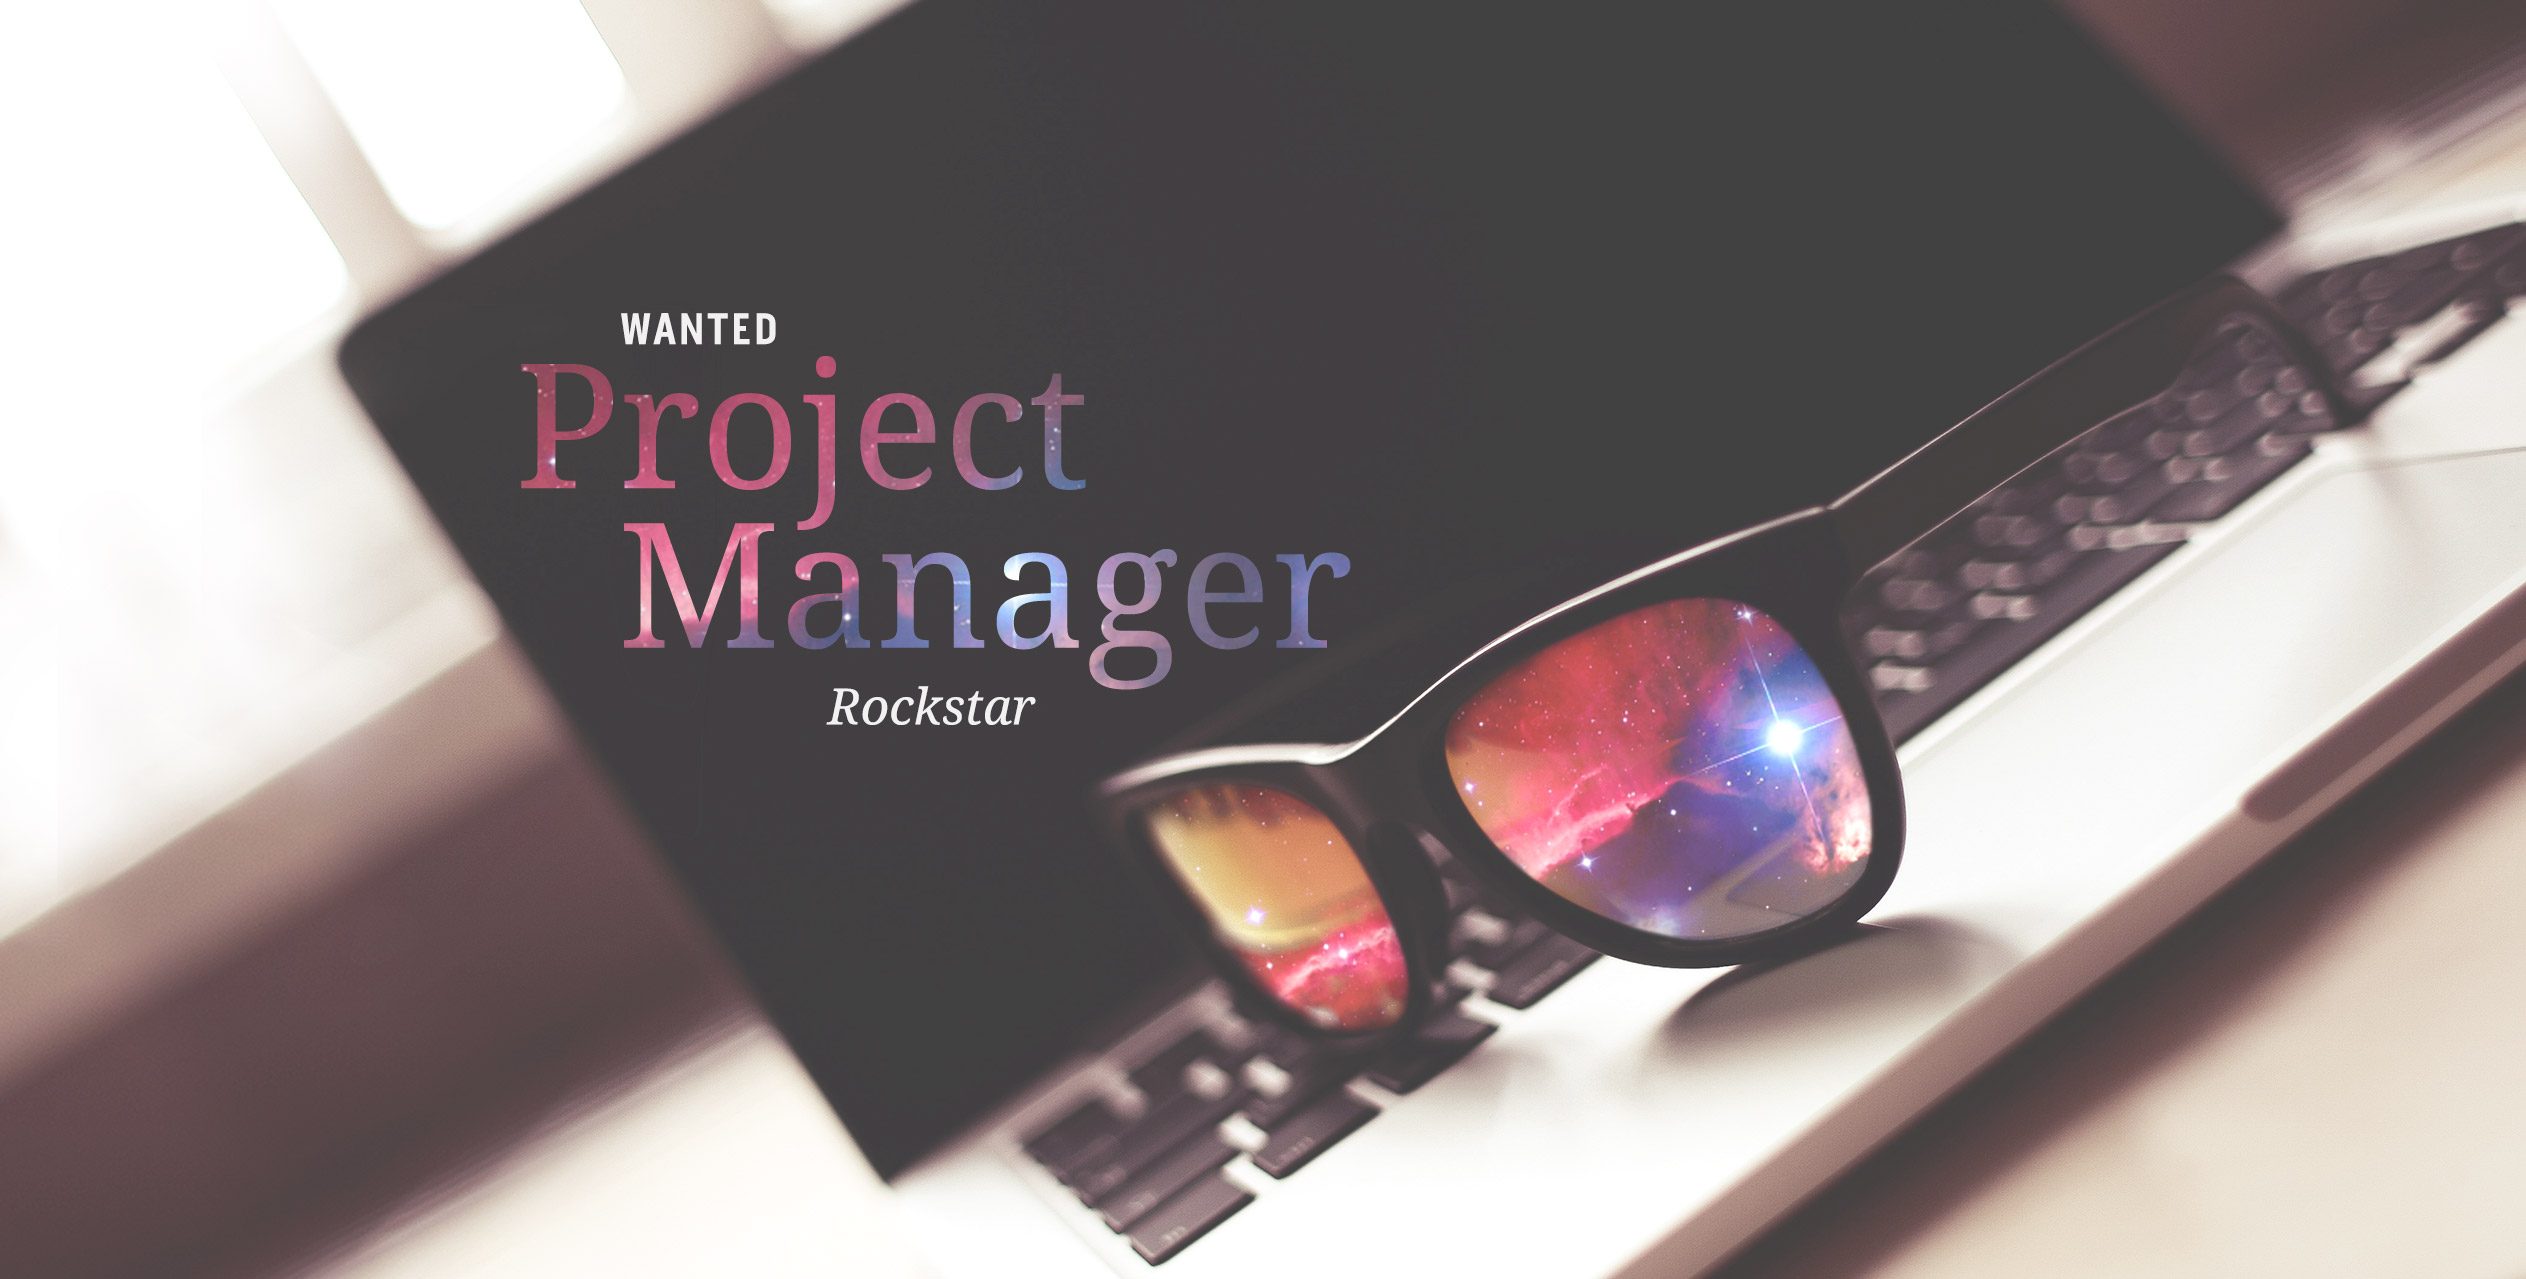 We're Hiring: Rockstar Project Manager